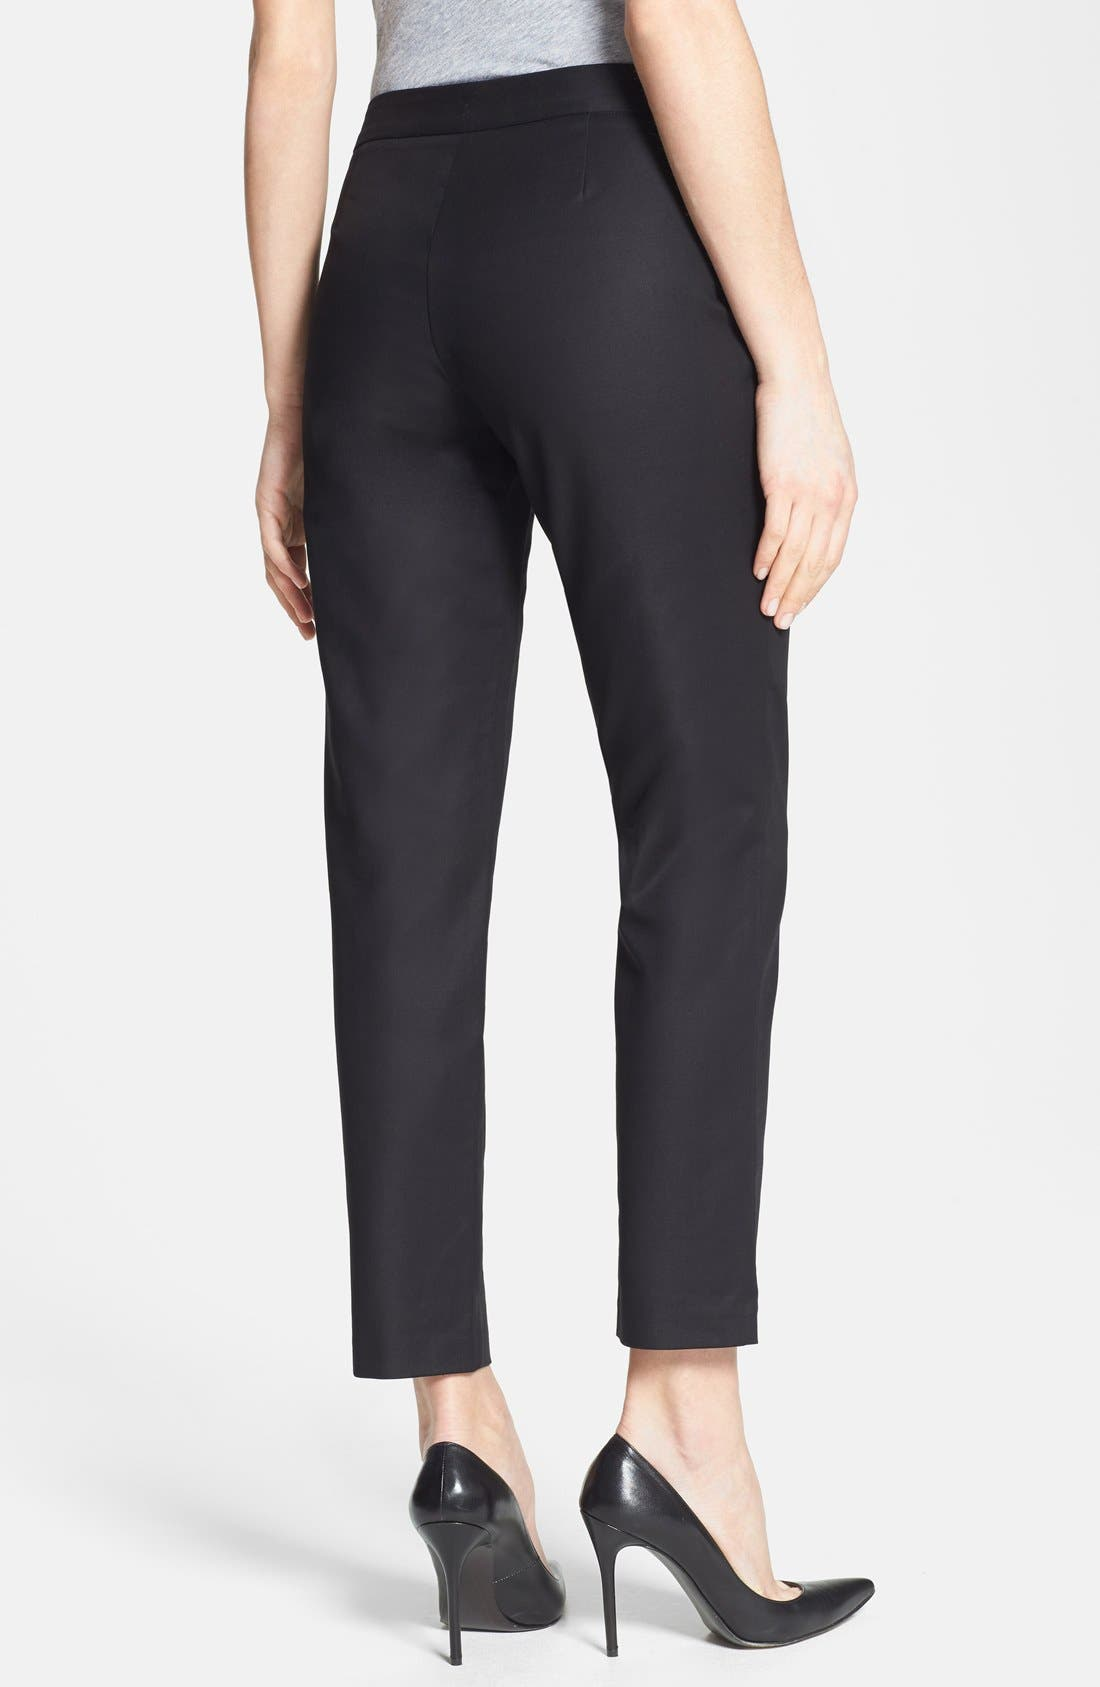 Alternate Image 2  - Kenneth Cole New York 'Khloee' Ankle Pants (Petite)